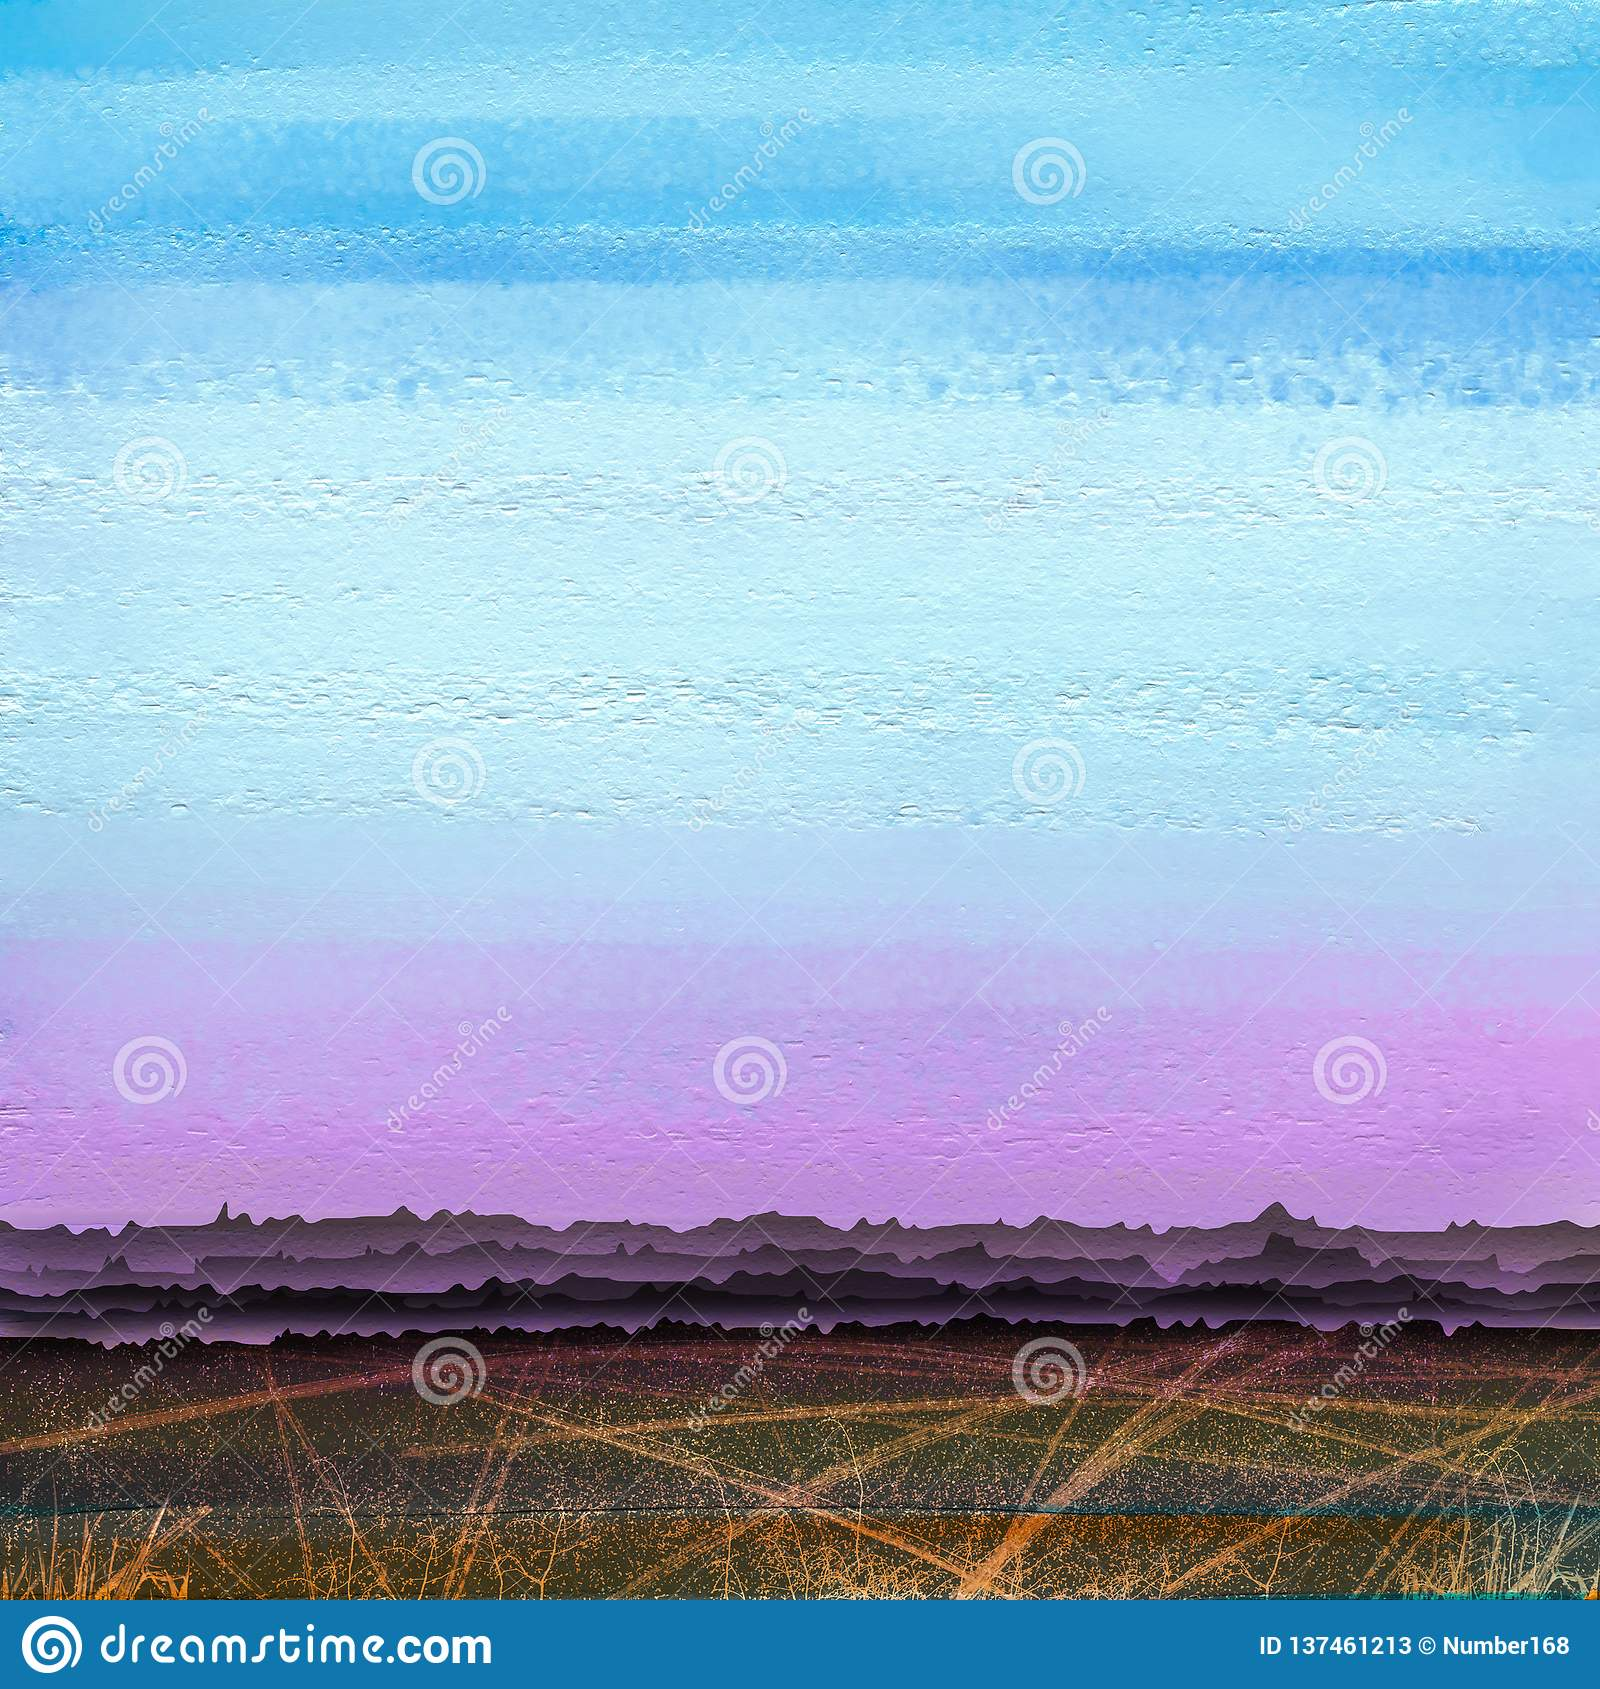 Abstract colorful oil, acrylic paint brush stroke on canvas texture. Semi abstract image of landscape painting background.